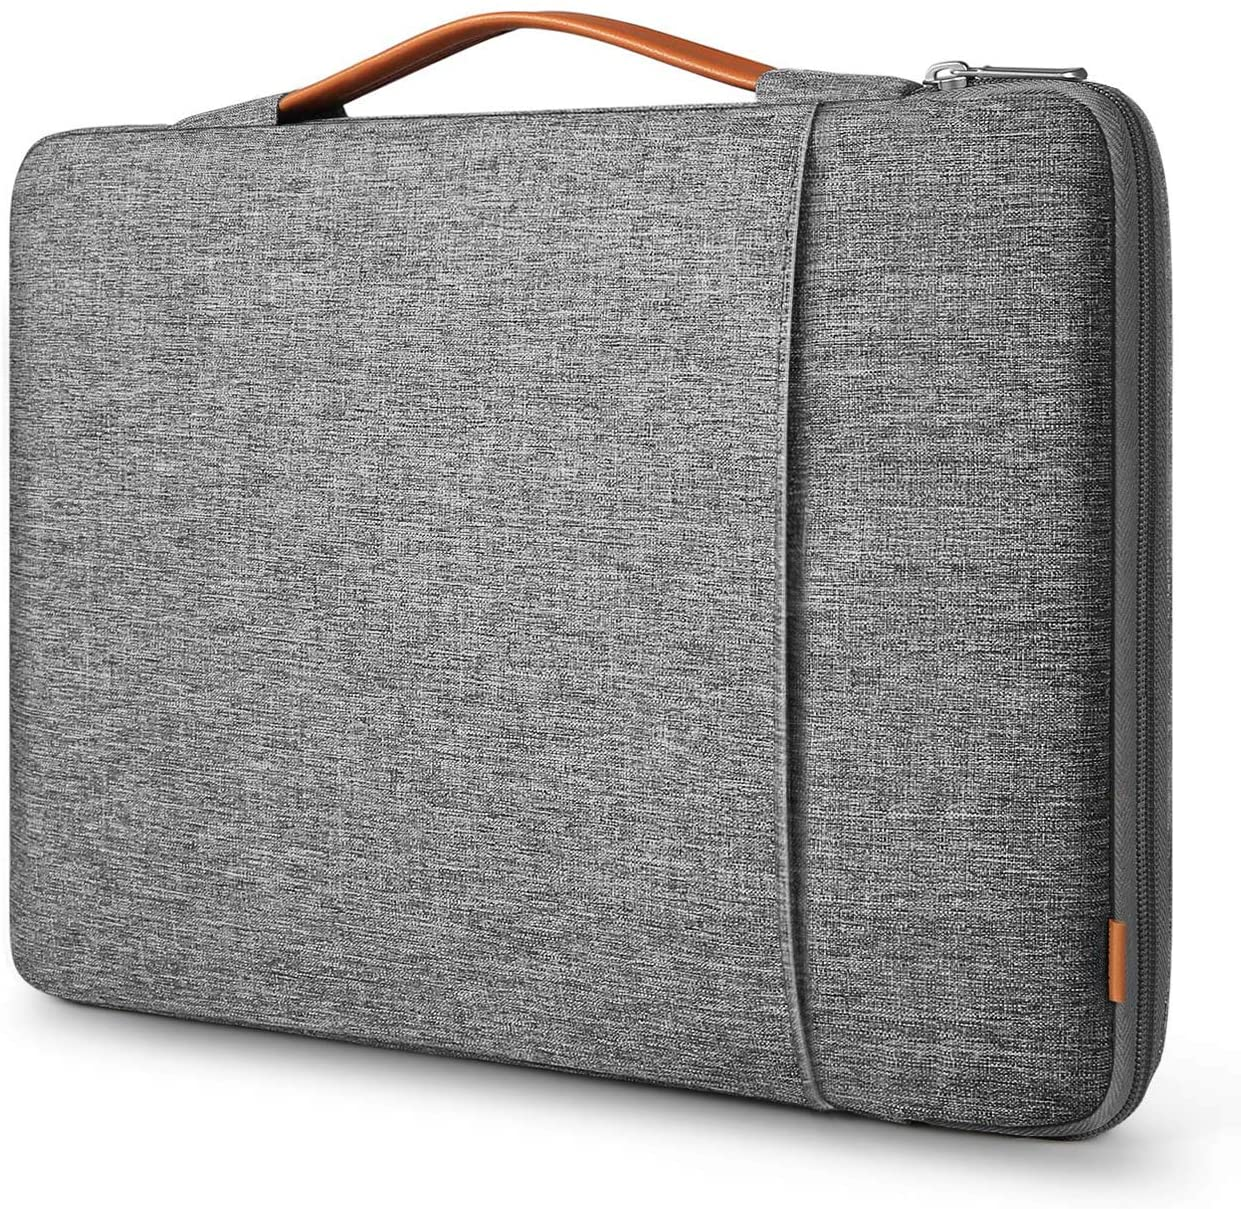 Inateck 15-15.6 Inch Shockproof Laptop Sleeve LB02006-15, Gray